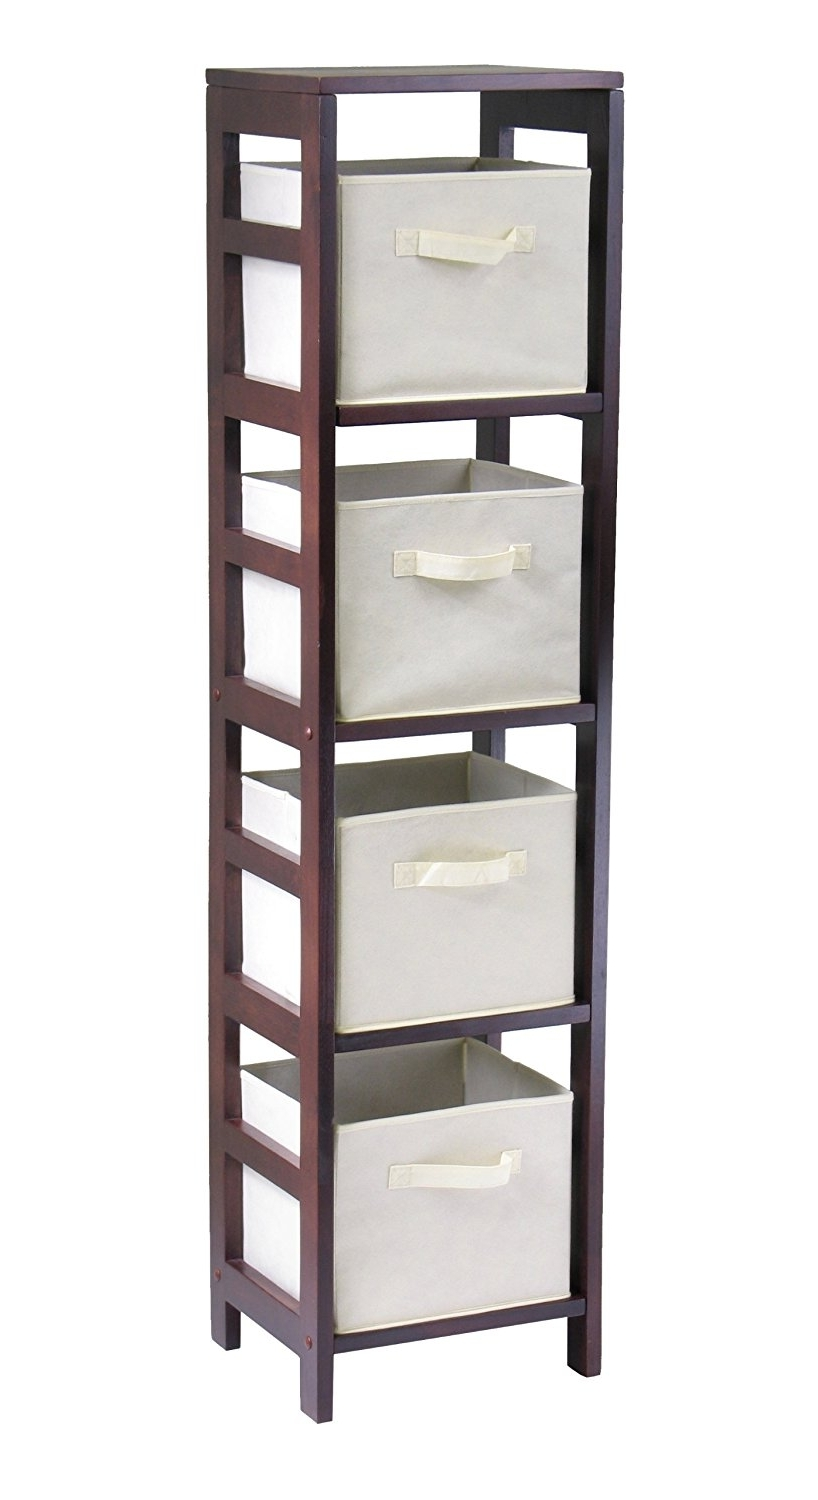 Most Current Very Narrow Shelving Unit With Amazon: Winsome Wood 4 Shelf Narrow Shelving Unit, Espresso (View 2 of 15)